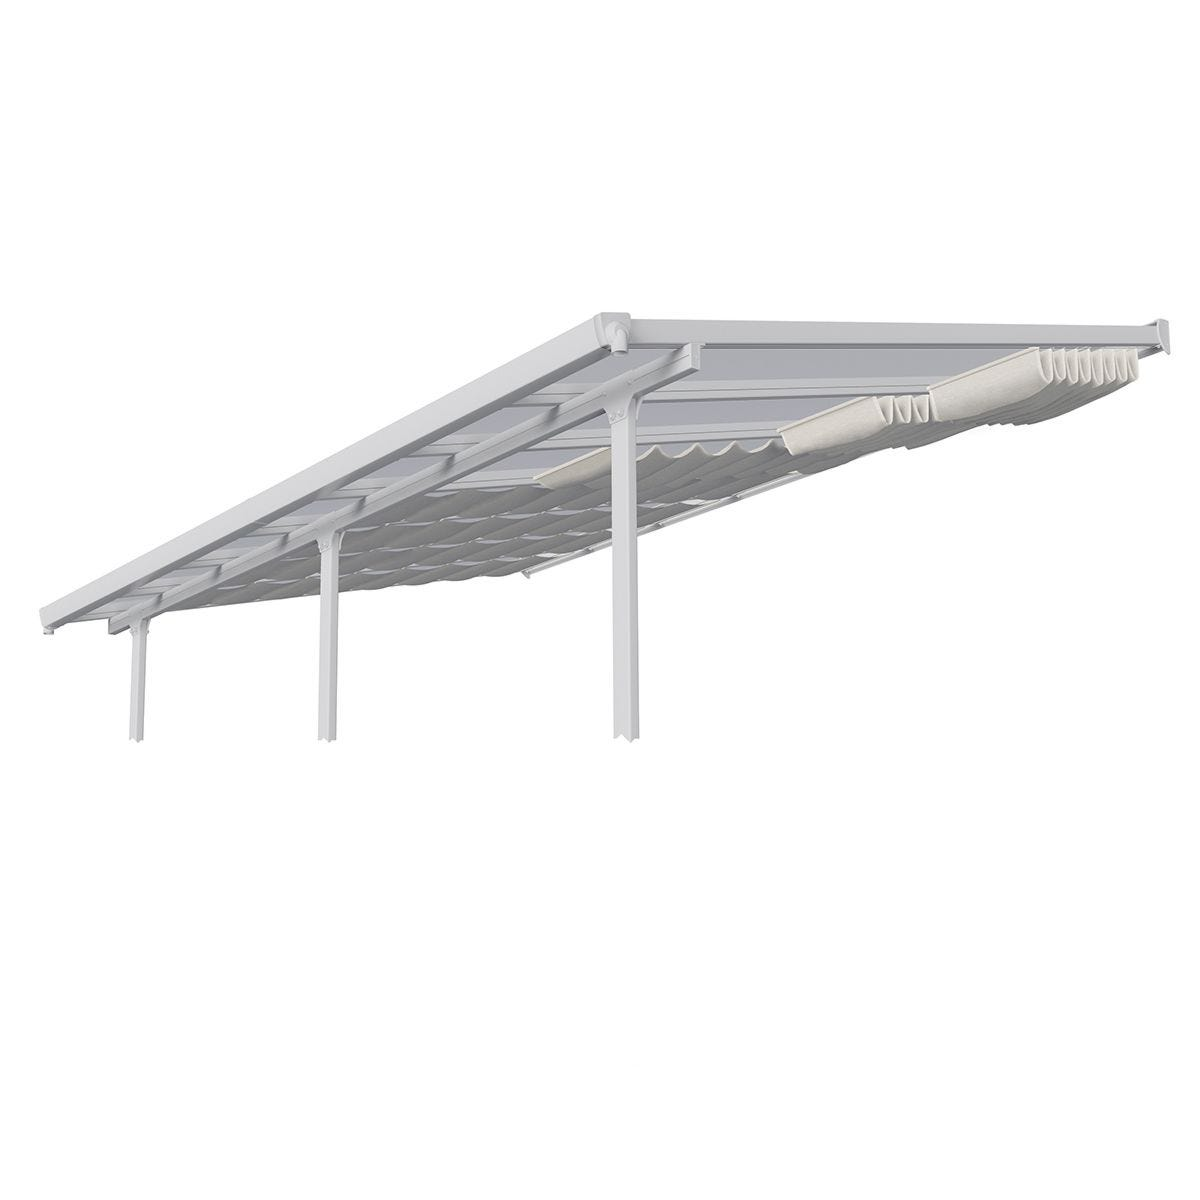 Palram Patio Cover Roof Blinds 3m x 6.1m - White